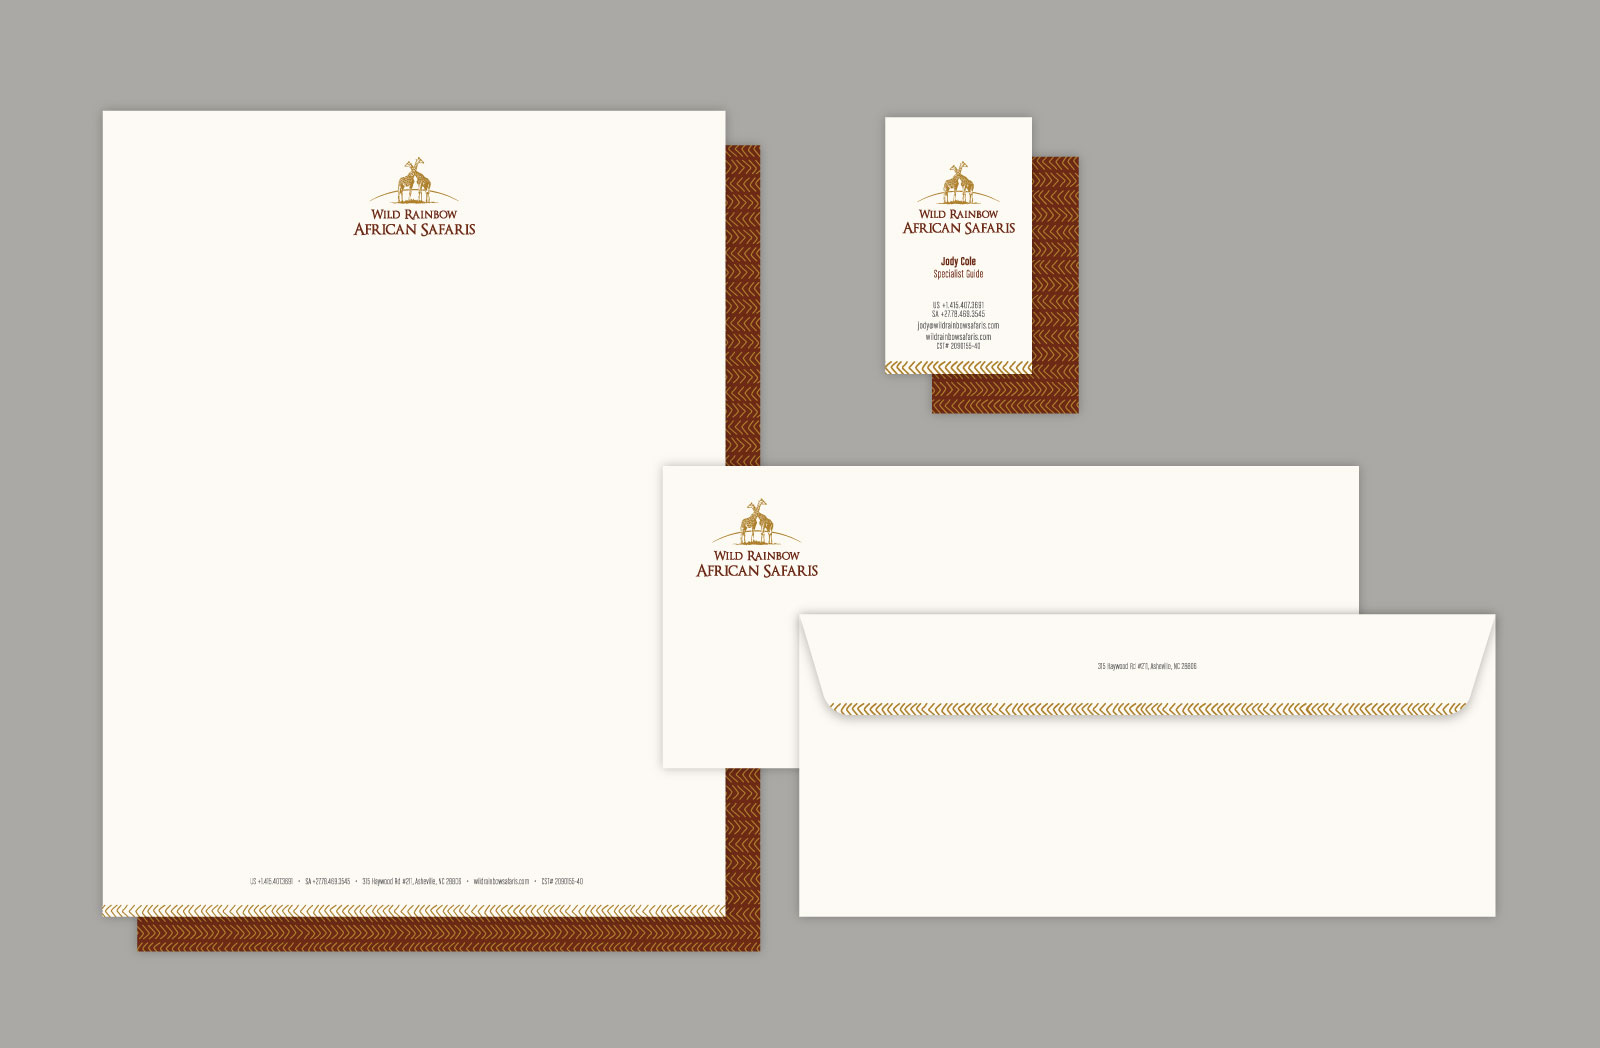 Wild Rainbow African Safari stationery with off-white paper including envelope, letterhead, and business cards